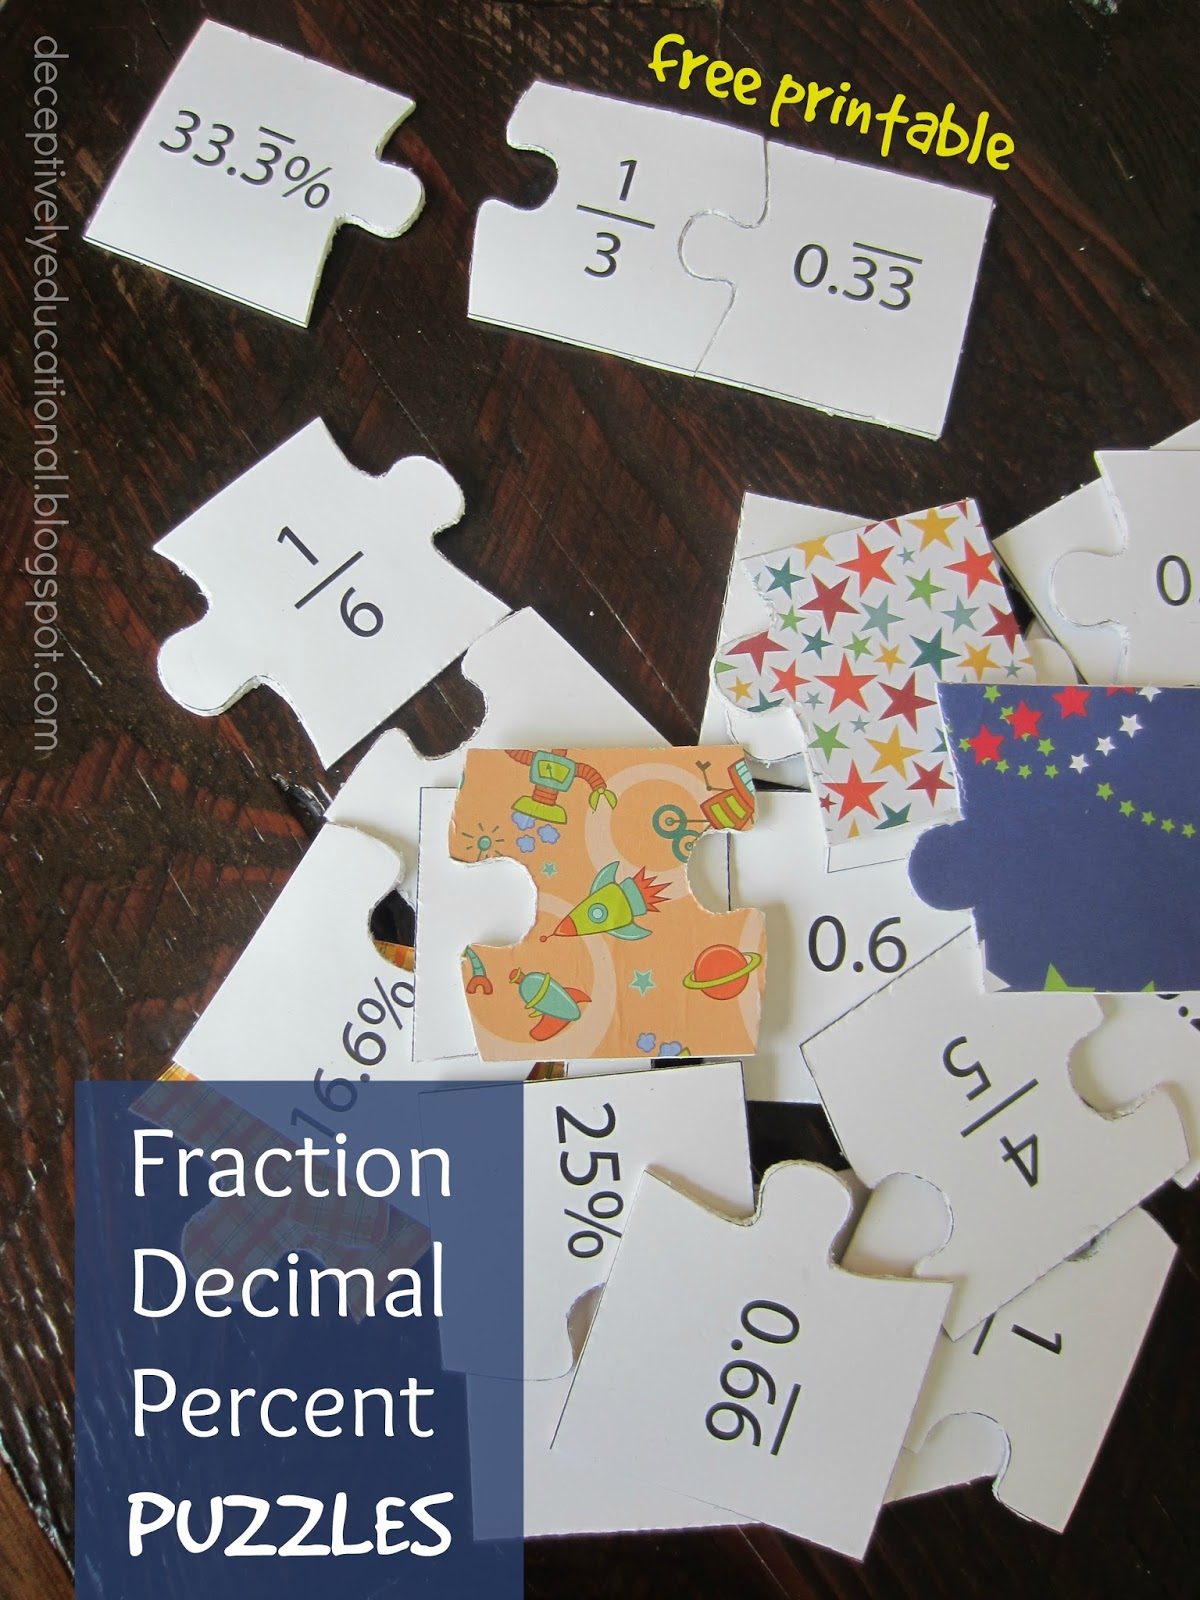 Fraction Bar Worksheetdecimals Fractions And Percentages Worksheet – Fraction Bar Worksheets Printable